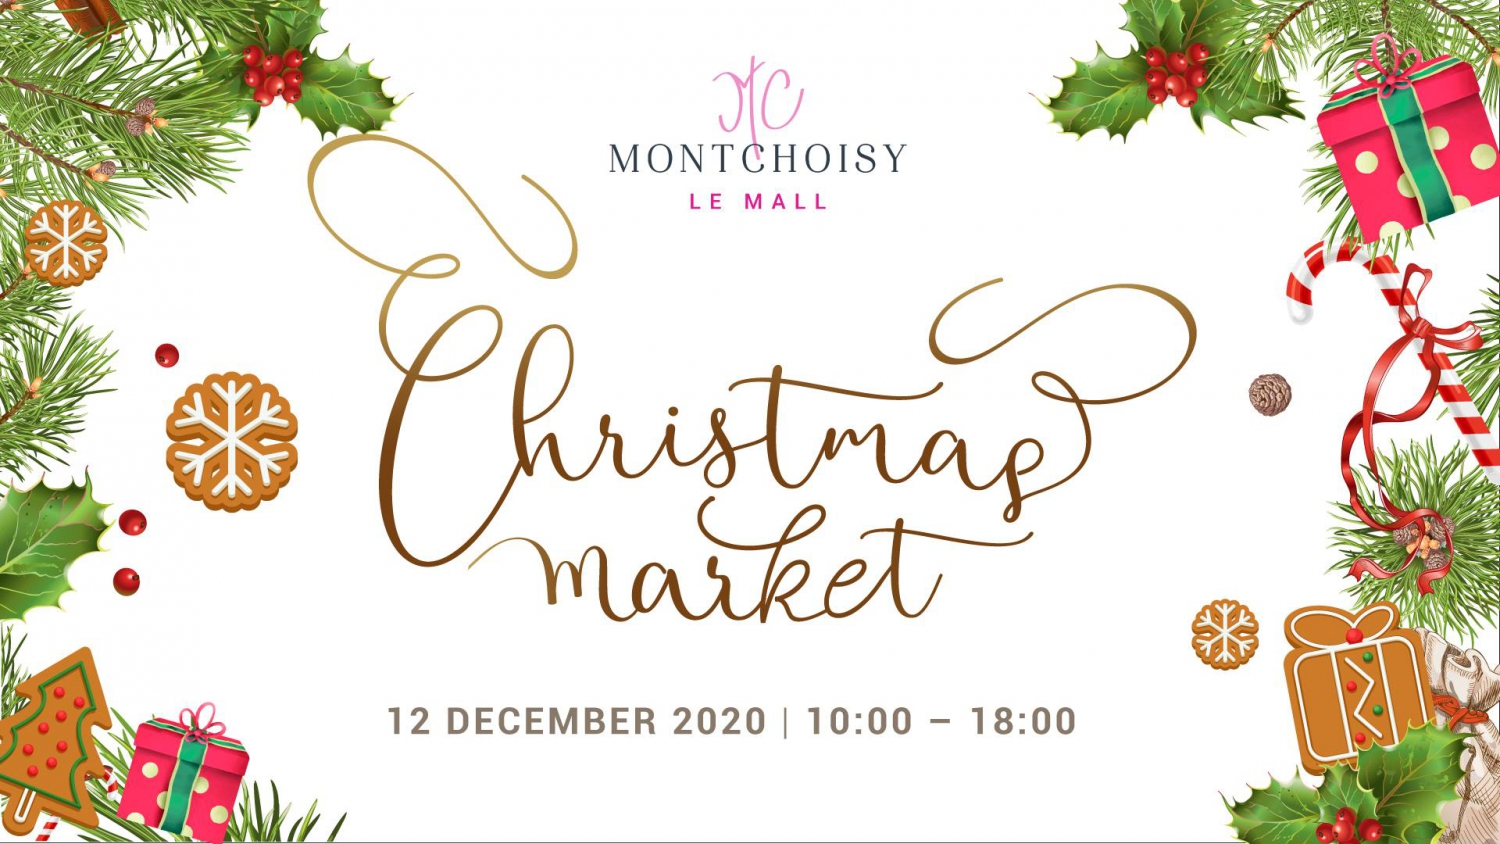 Christmas Market 2020 at Mont Choisy Le Mall